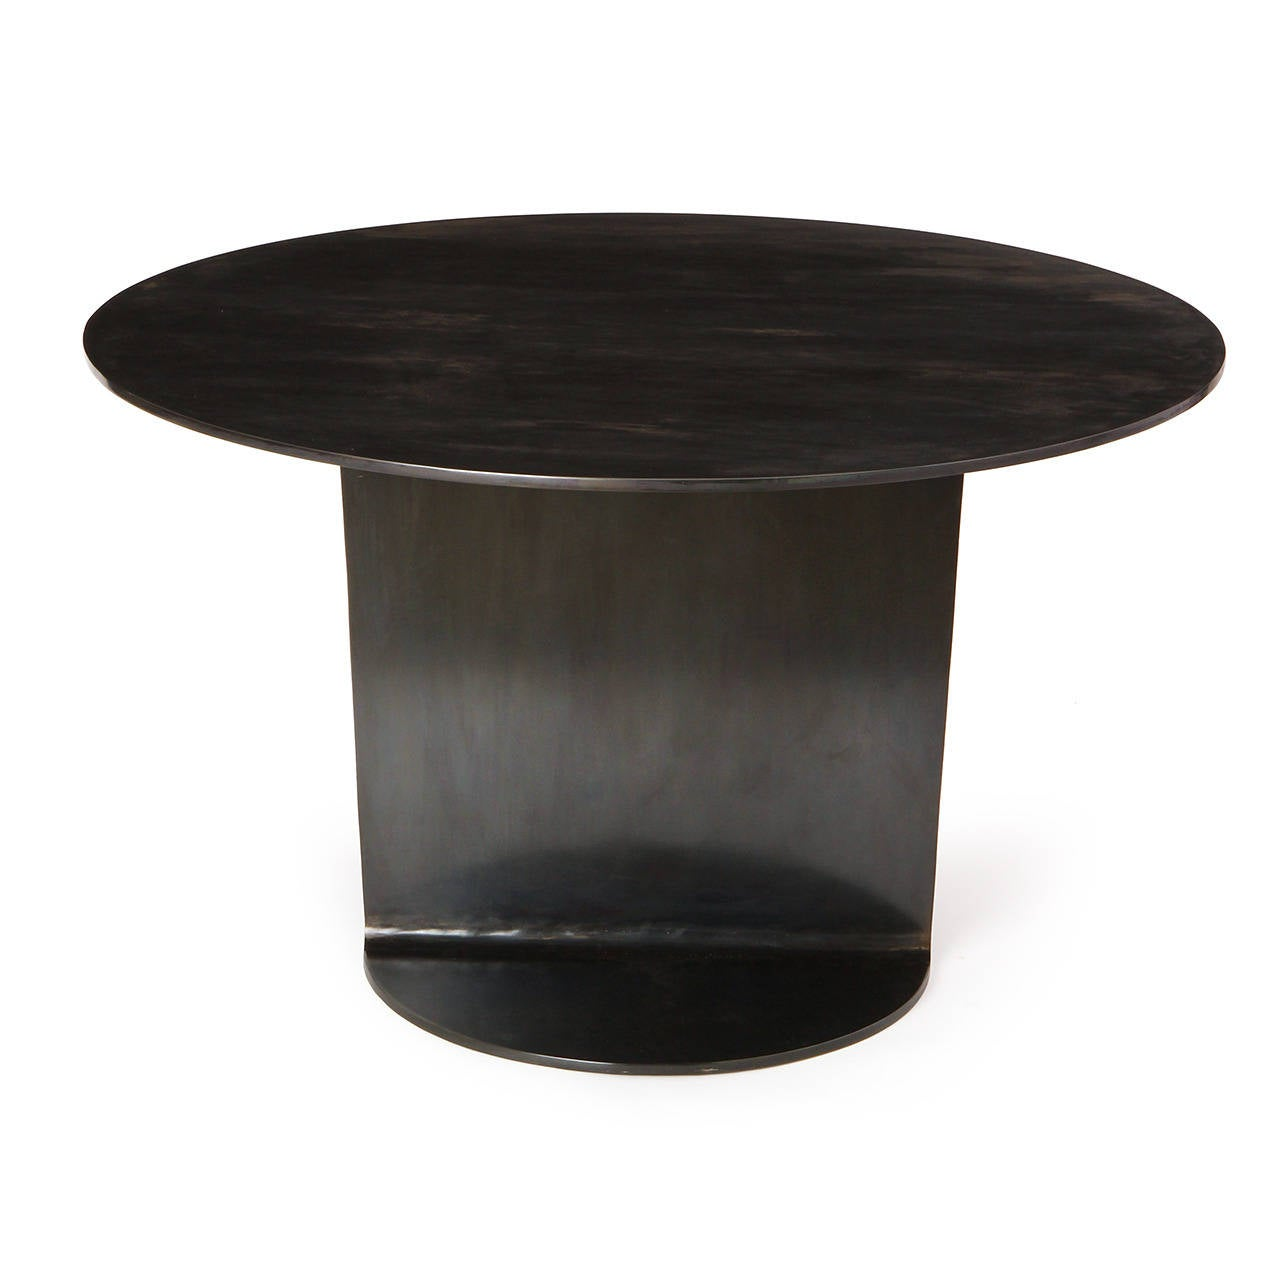 20th Century WYETH Original I Beam Gong Table in Blackened Steel For Sale